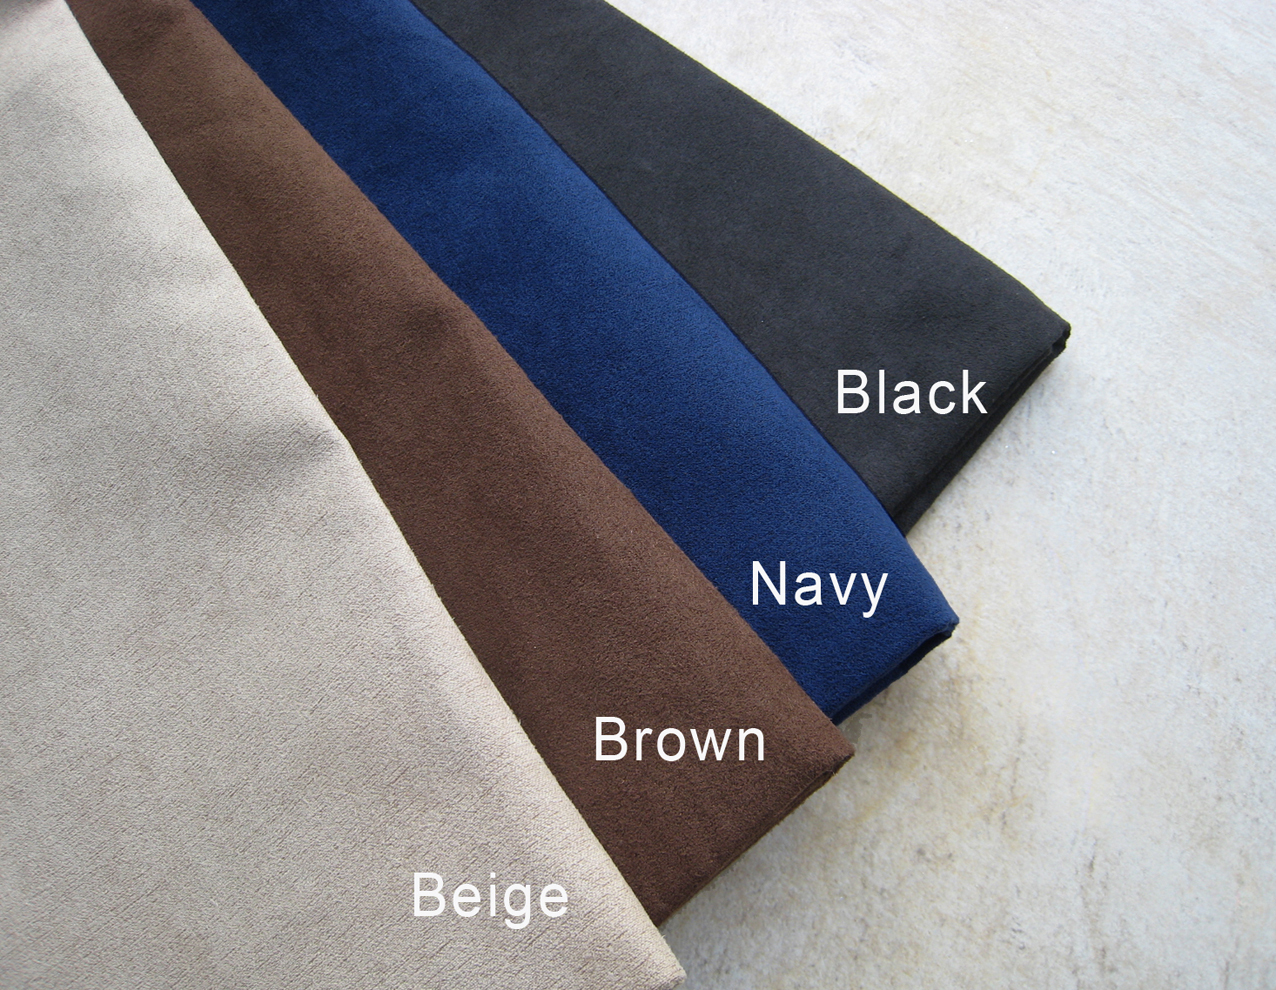 Suede_colors_black_navy_brown_beige